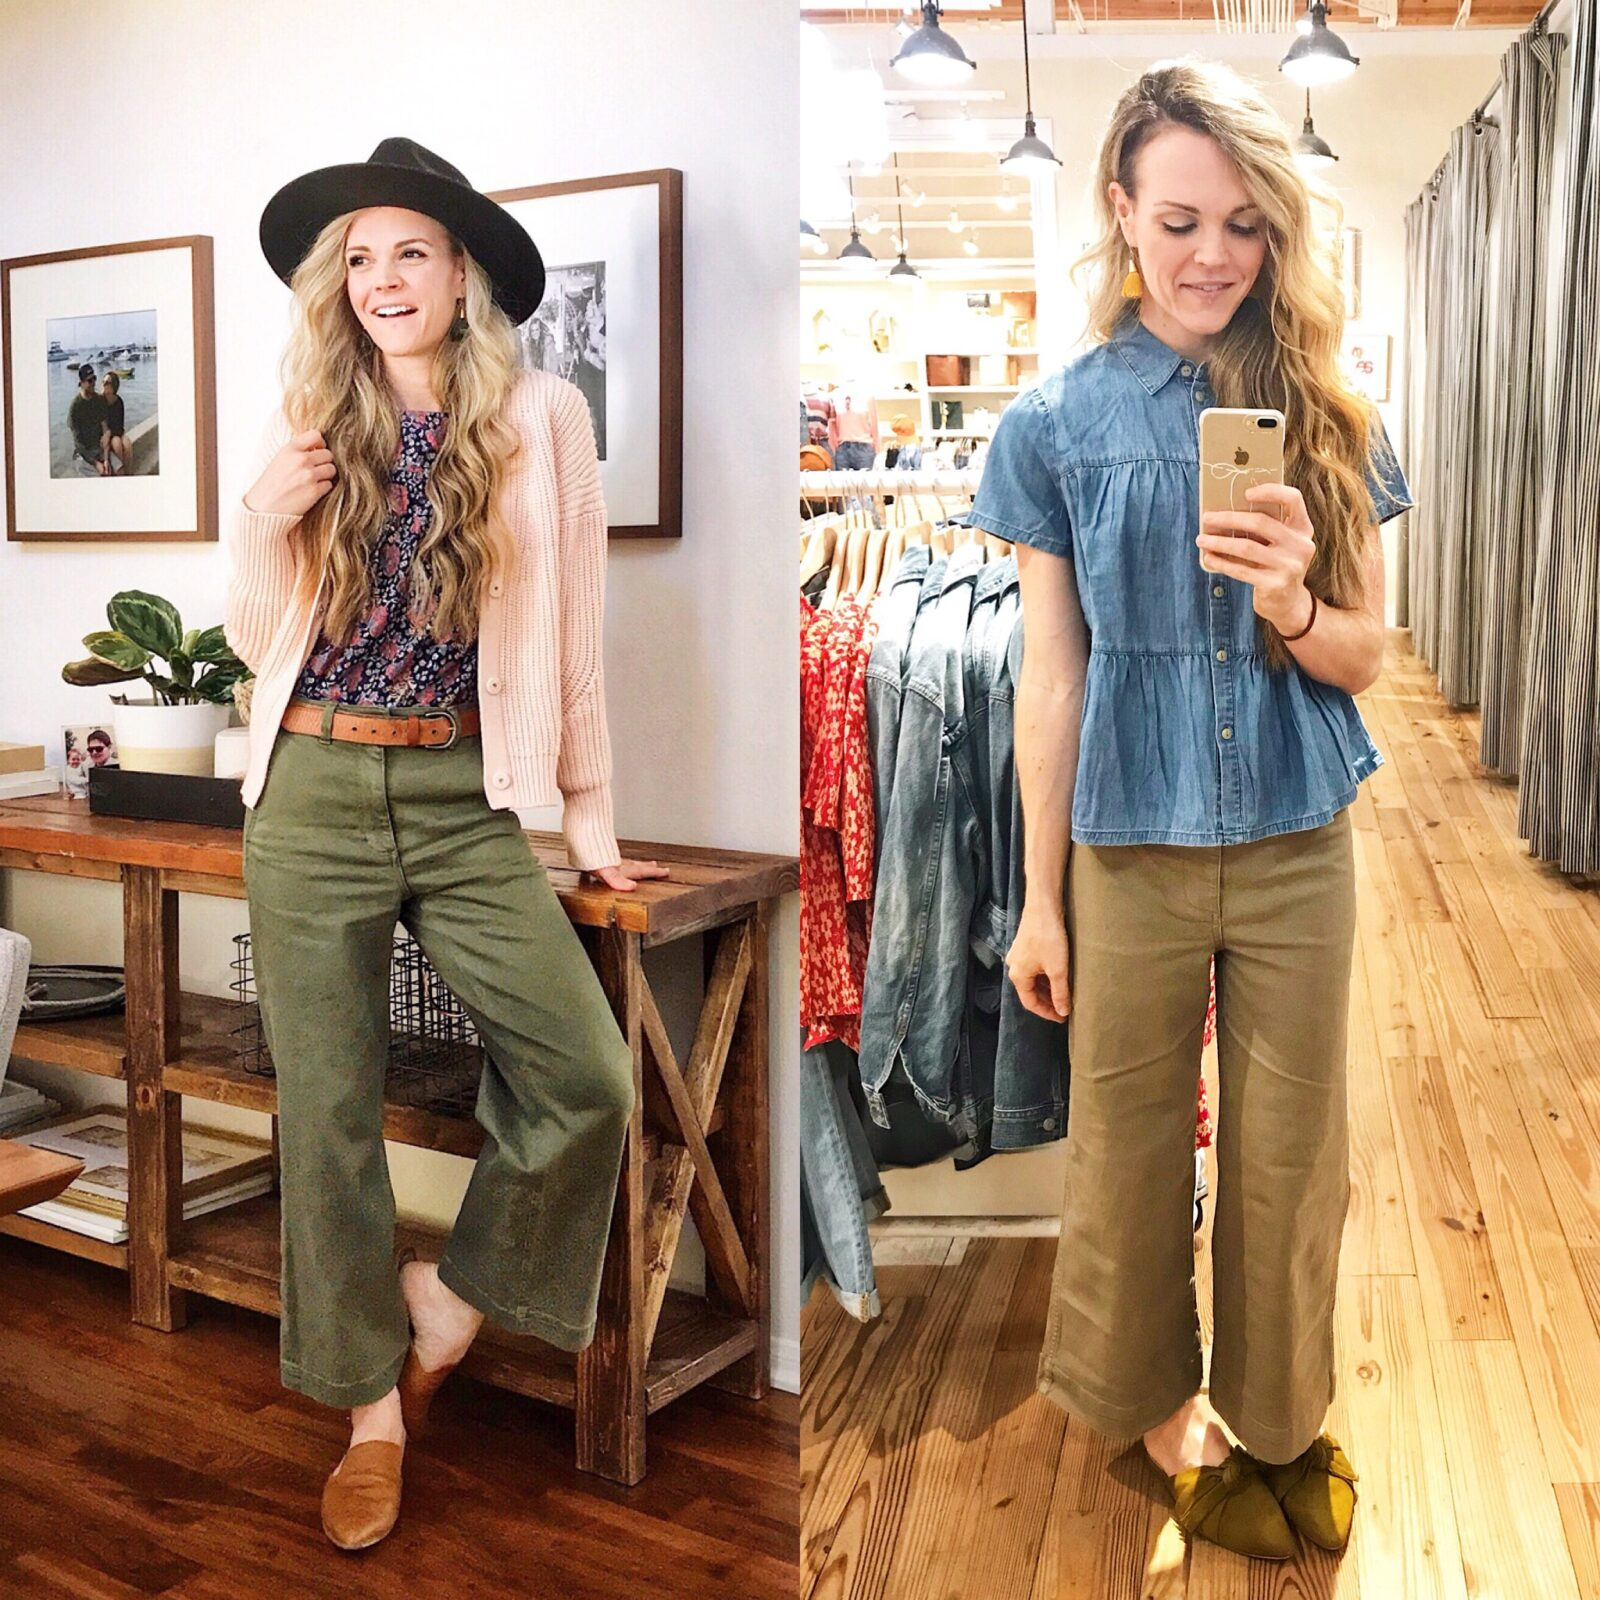 e239897538080 after receiving quite a few direct messages questions regarding the  differences between everlane s wide-leg cropped pant and madewell s similar  version